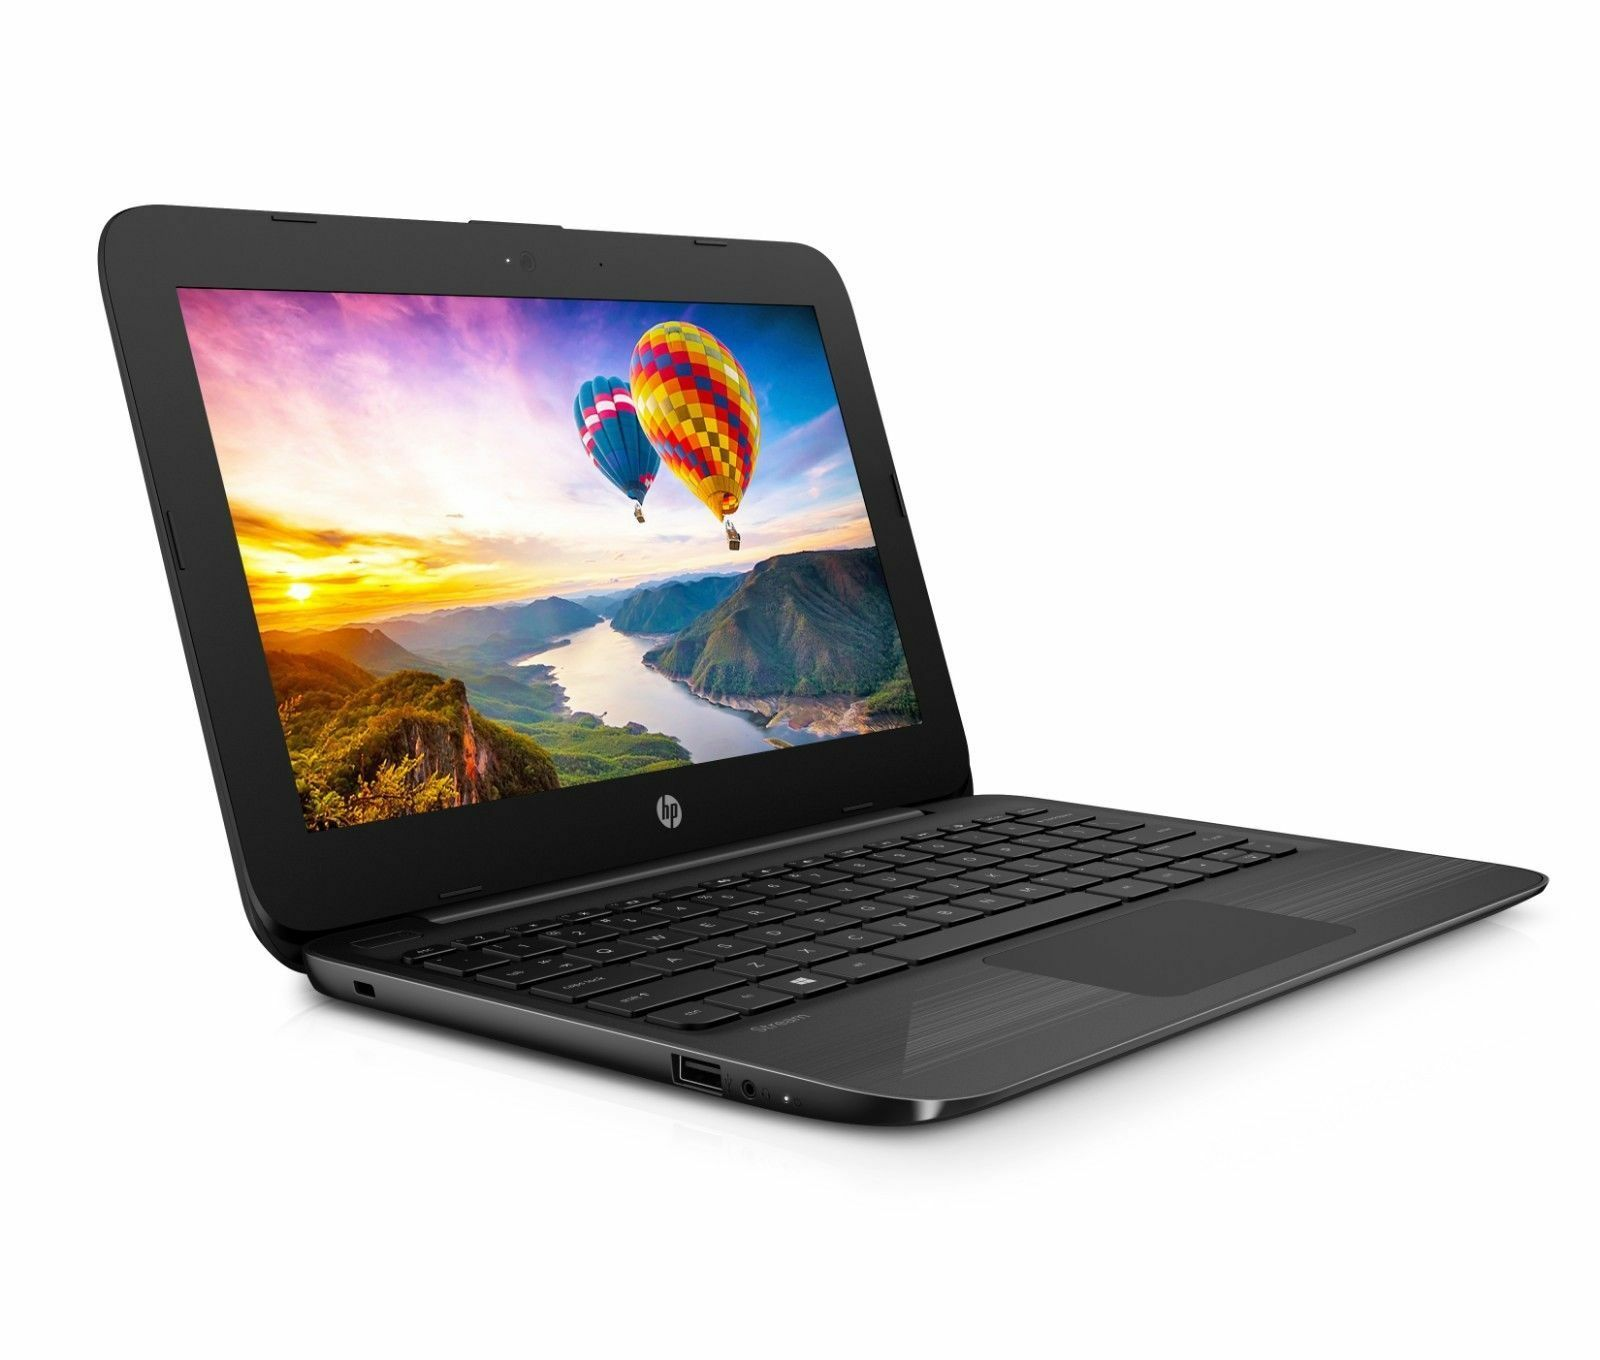 "Laptop Windows - HP Stream 11.6"" HD Intel N4000 2.6GHz 4GB 32GB eMMC Windows 10 - 11-AH117WM"